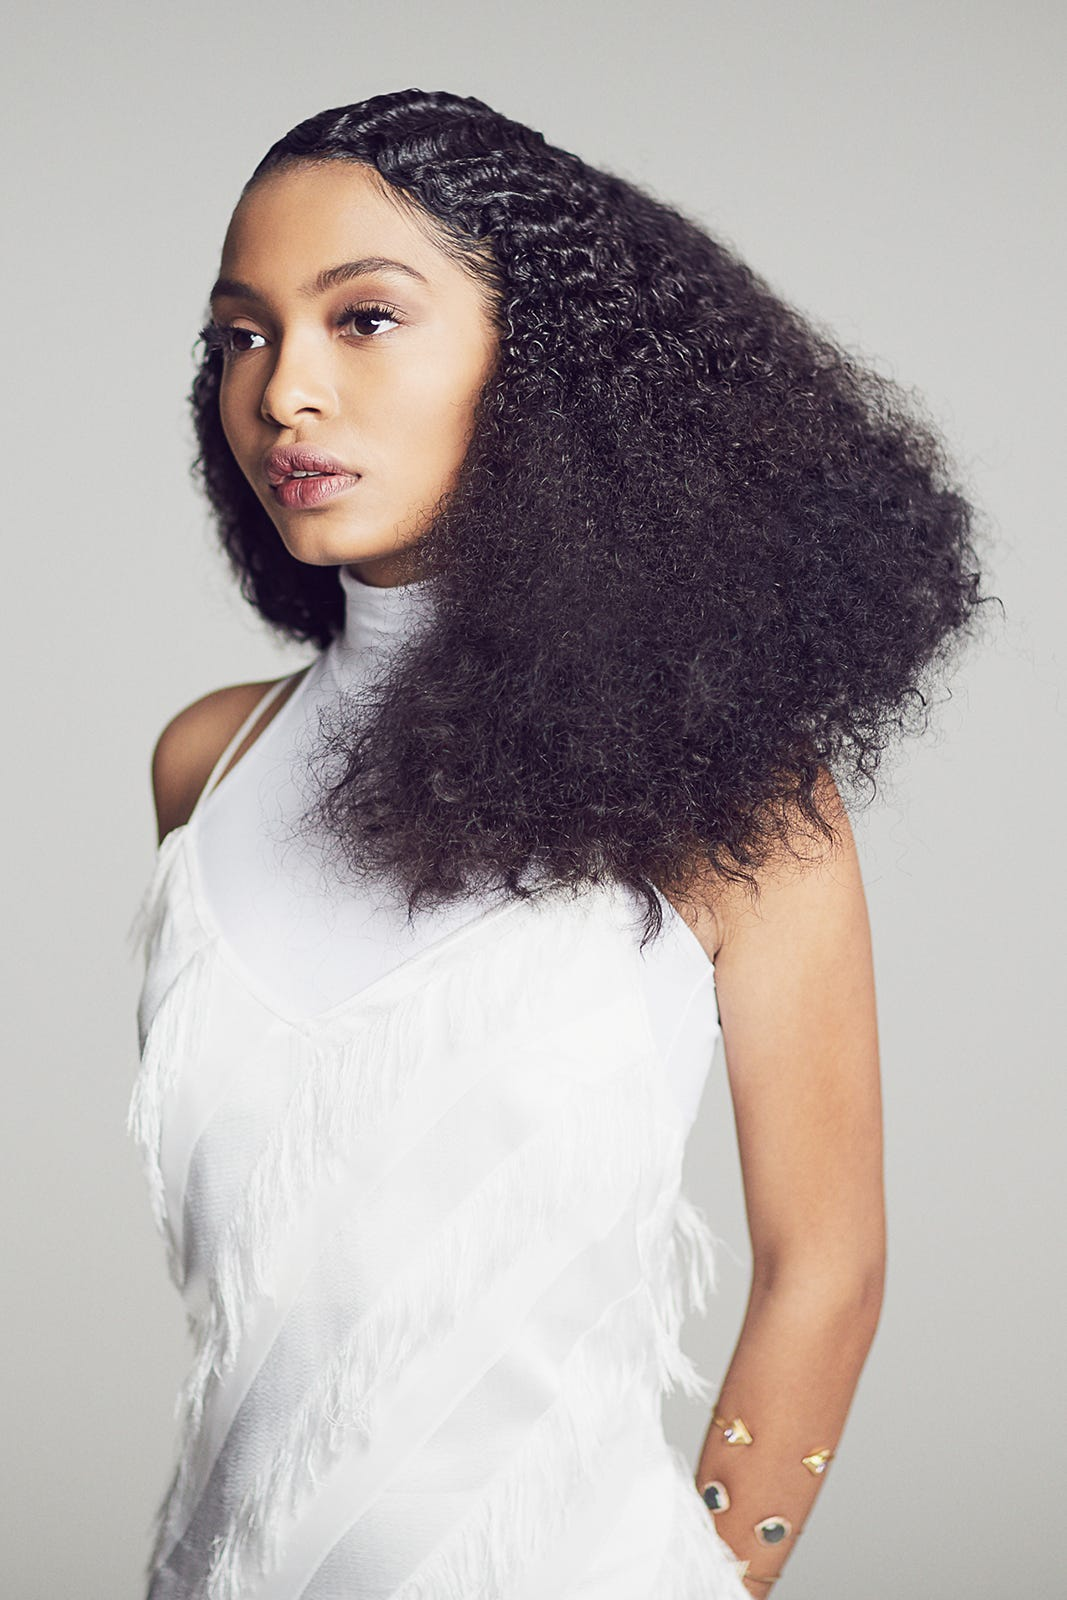 Yara Shahidi Natural Hair No Heat Curls Stylist Look